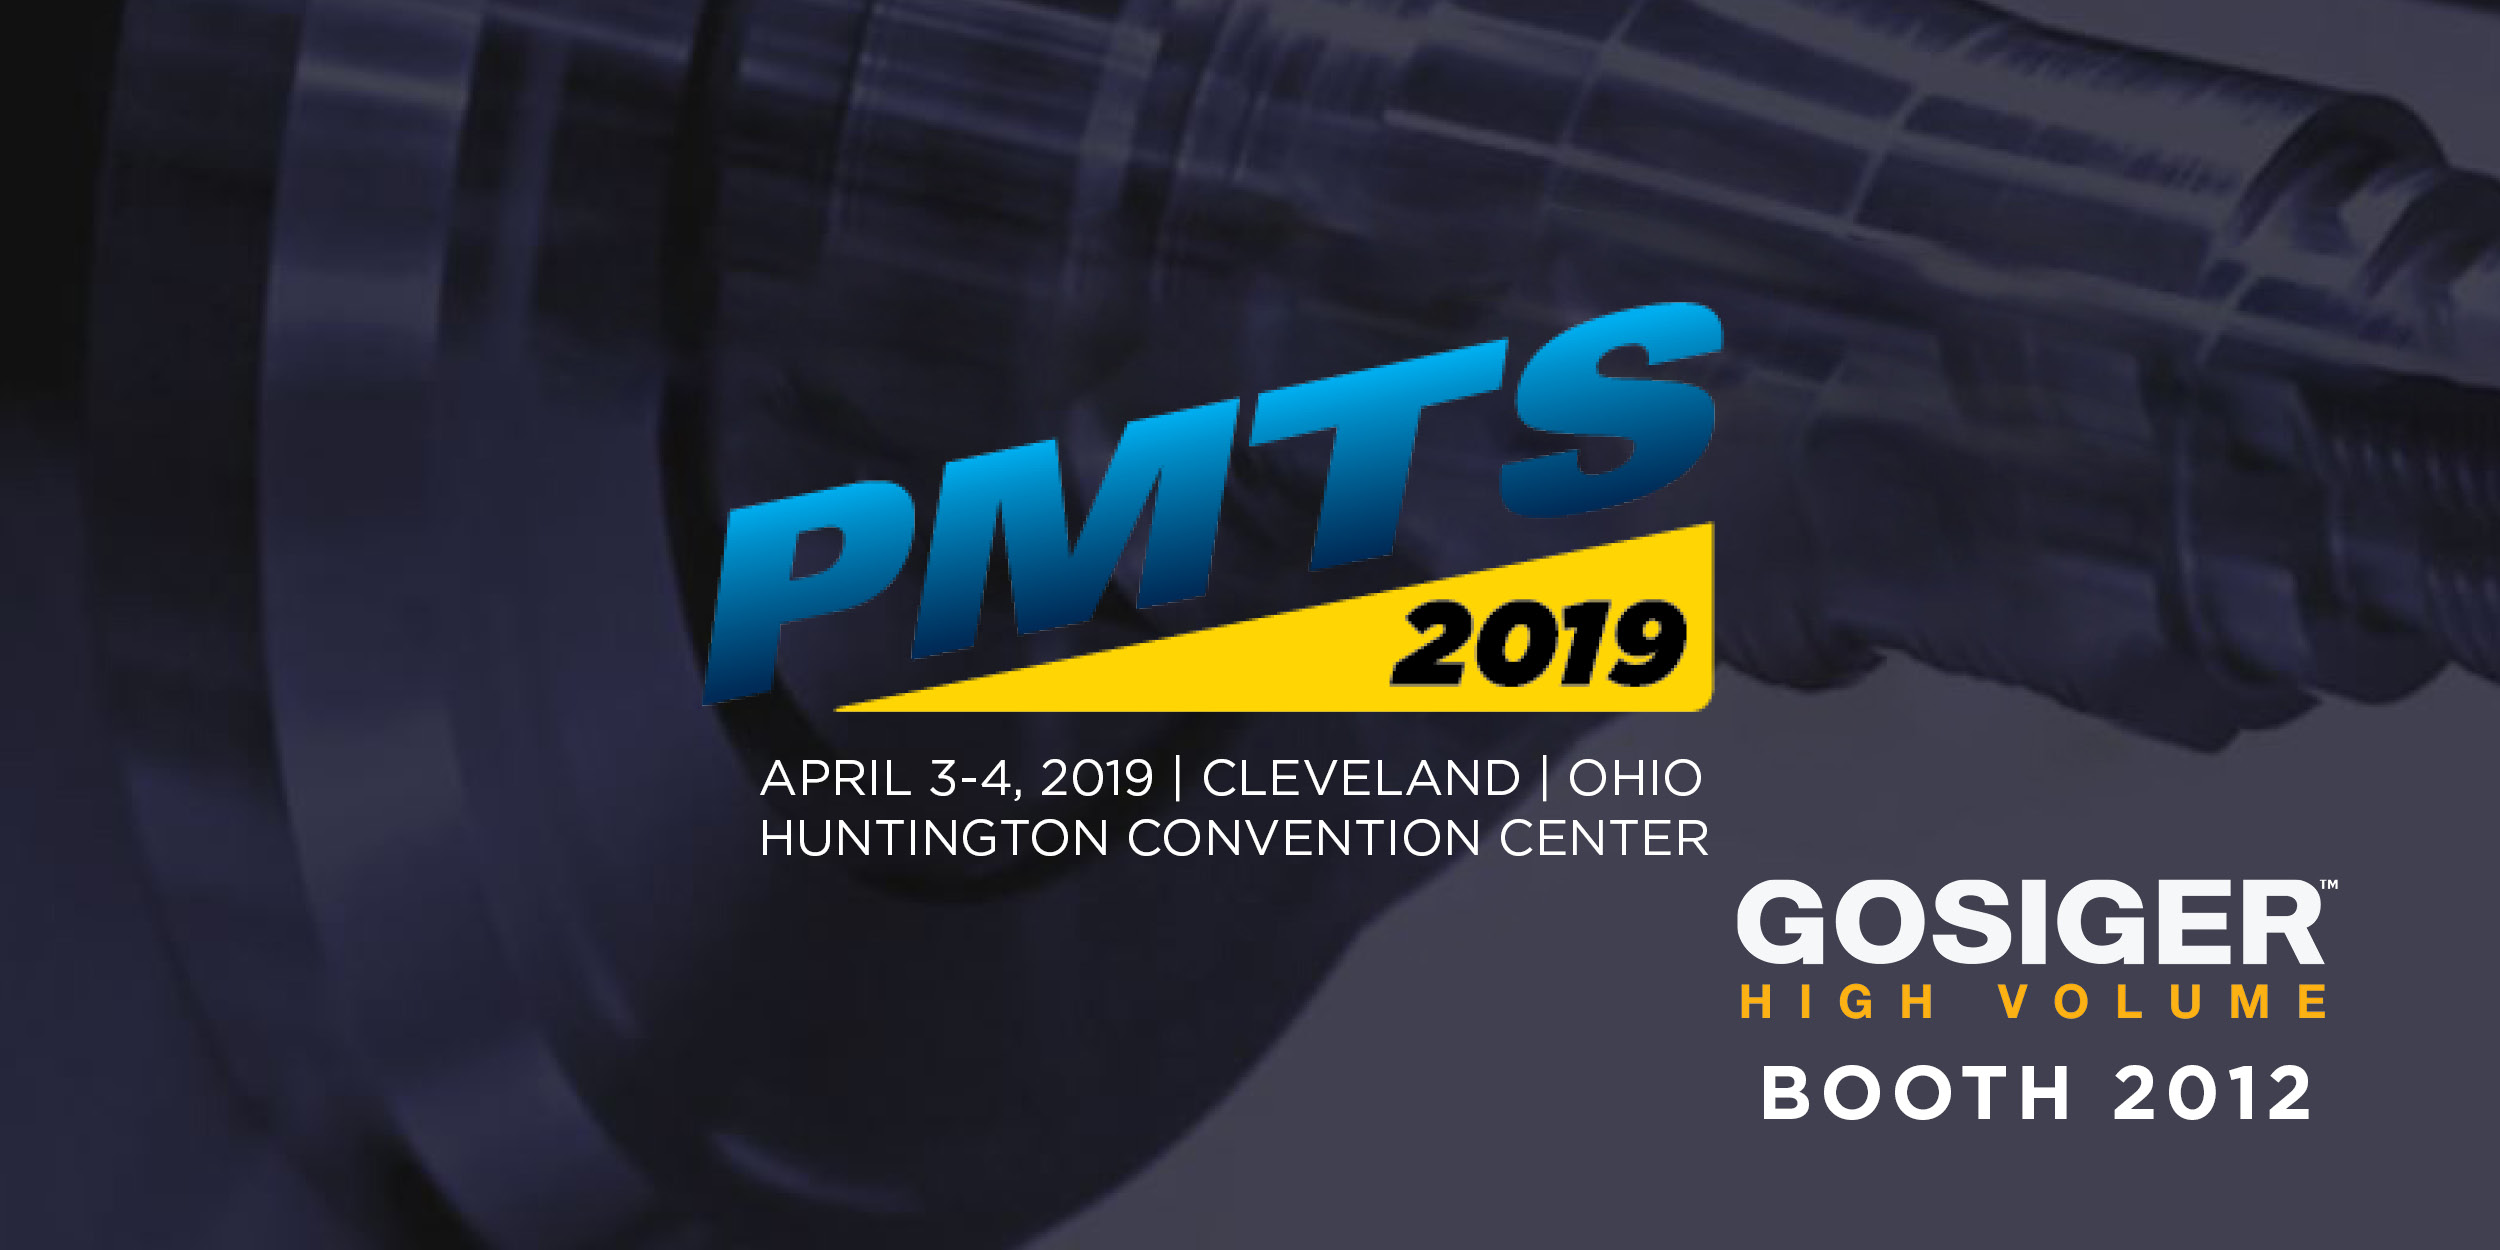 Gosiger High Volume Products Displayed in PMTS 2019 Booth 2012